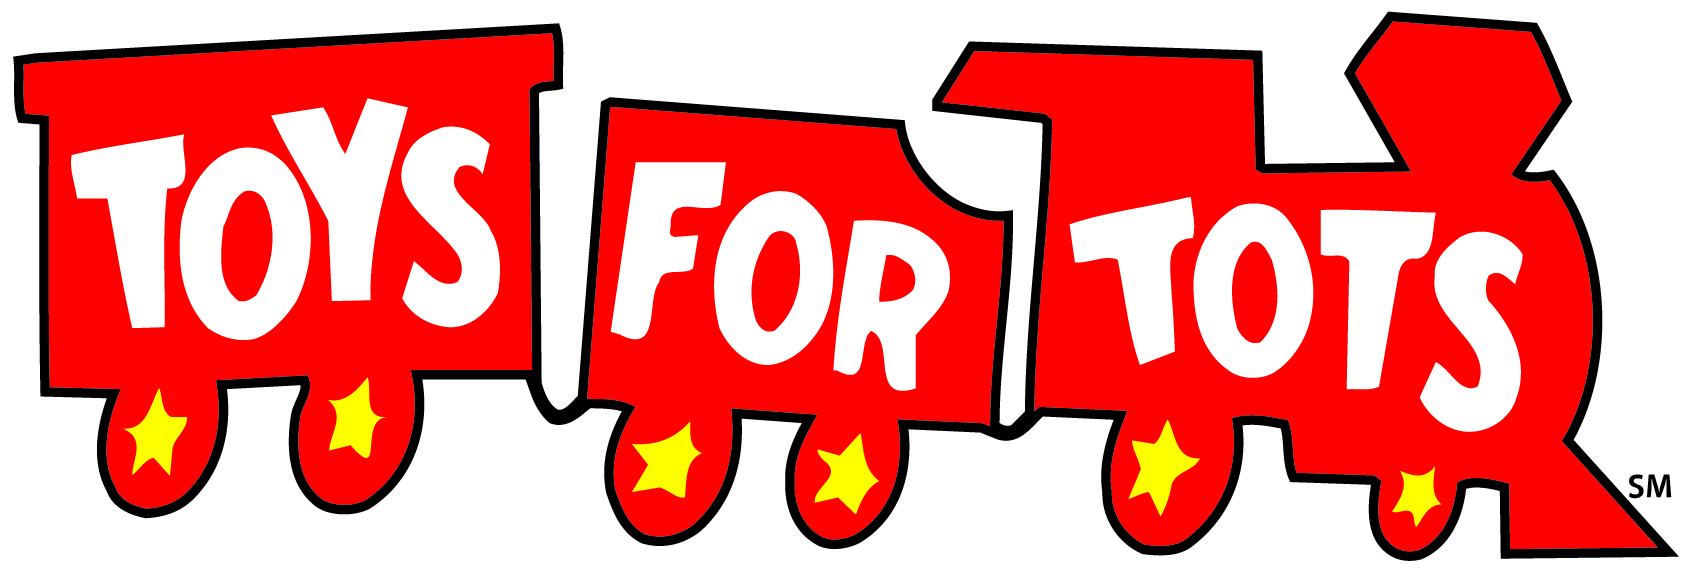 Organization For Toys For Tots Application Form : Brick pba collecting for toys tots program nj